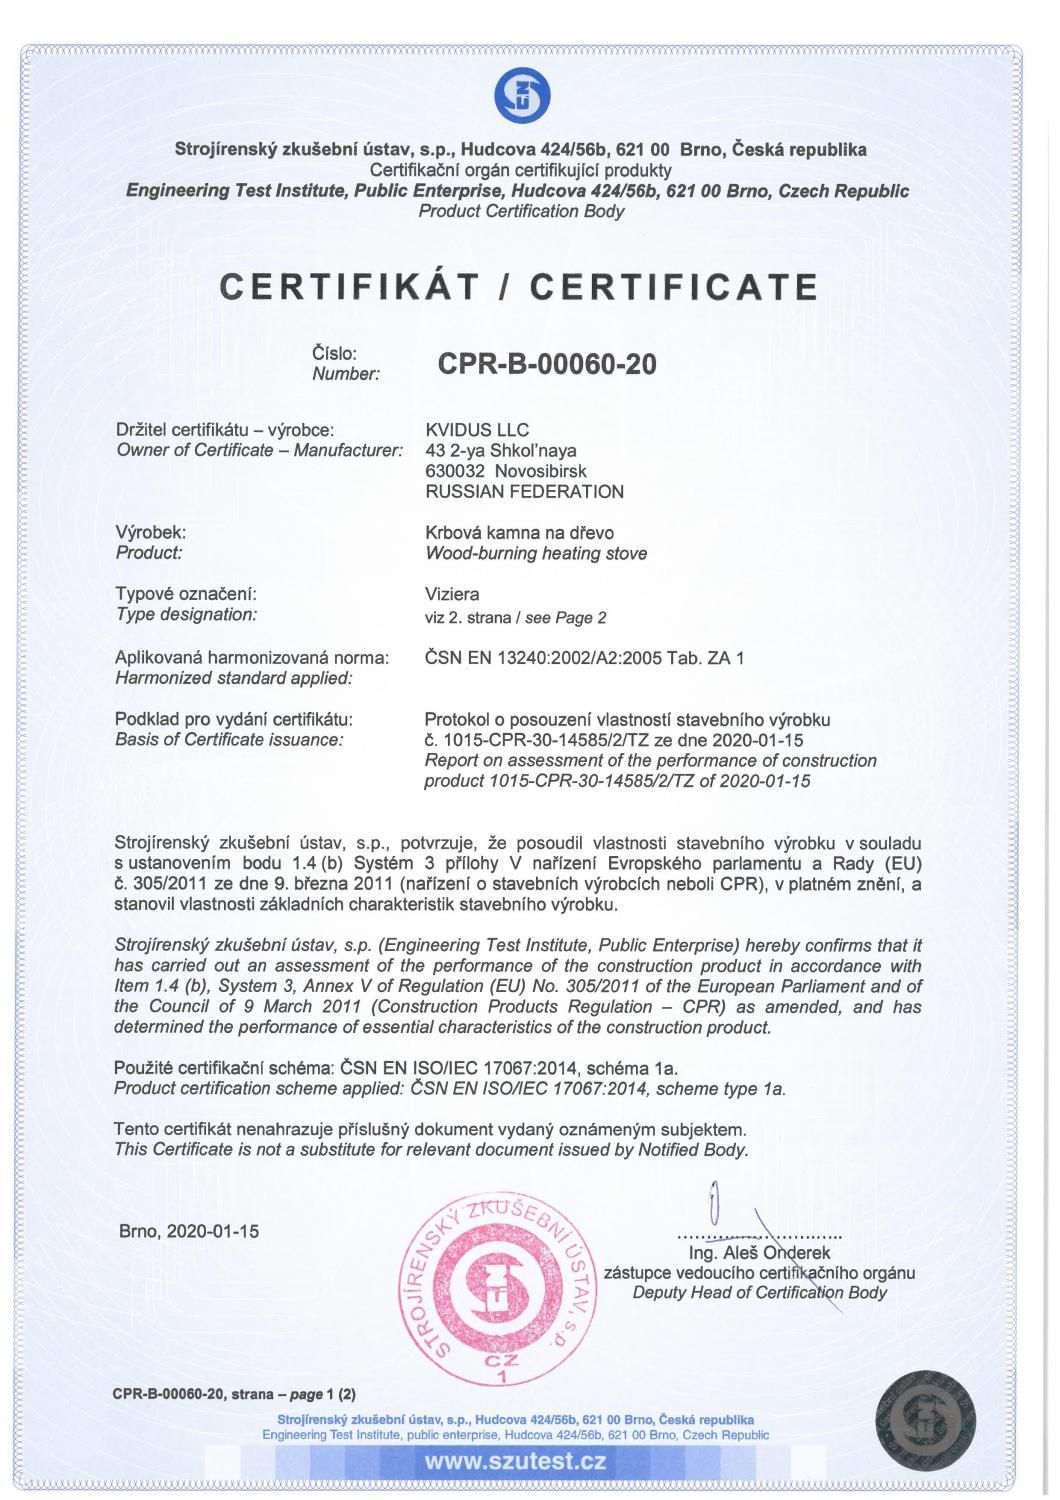 Domentation for certification Визиера